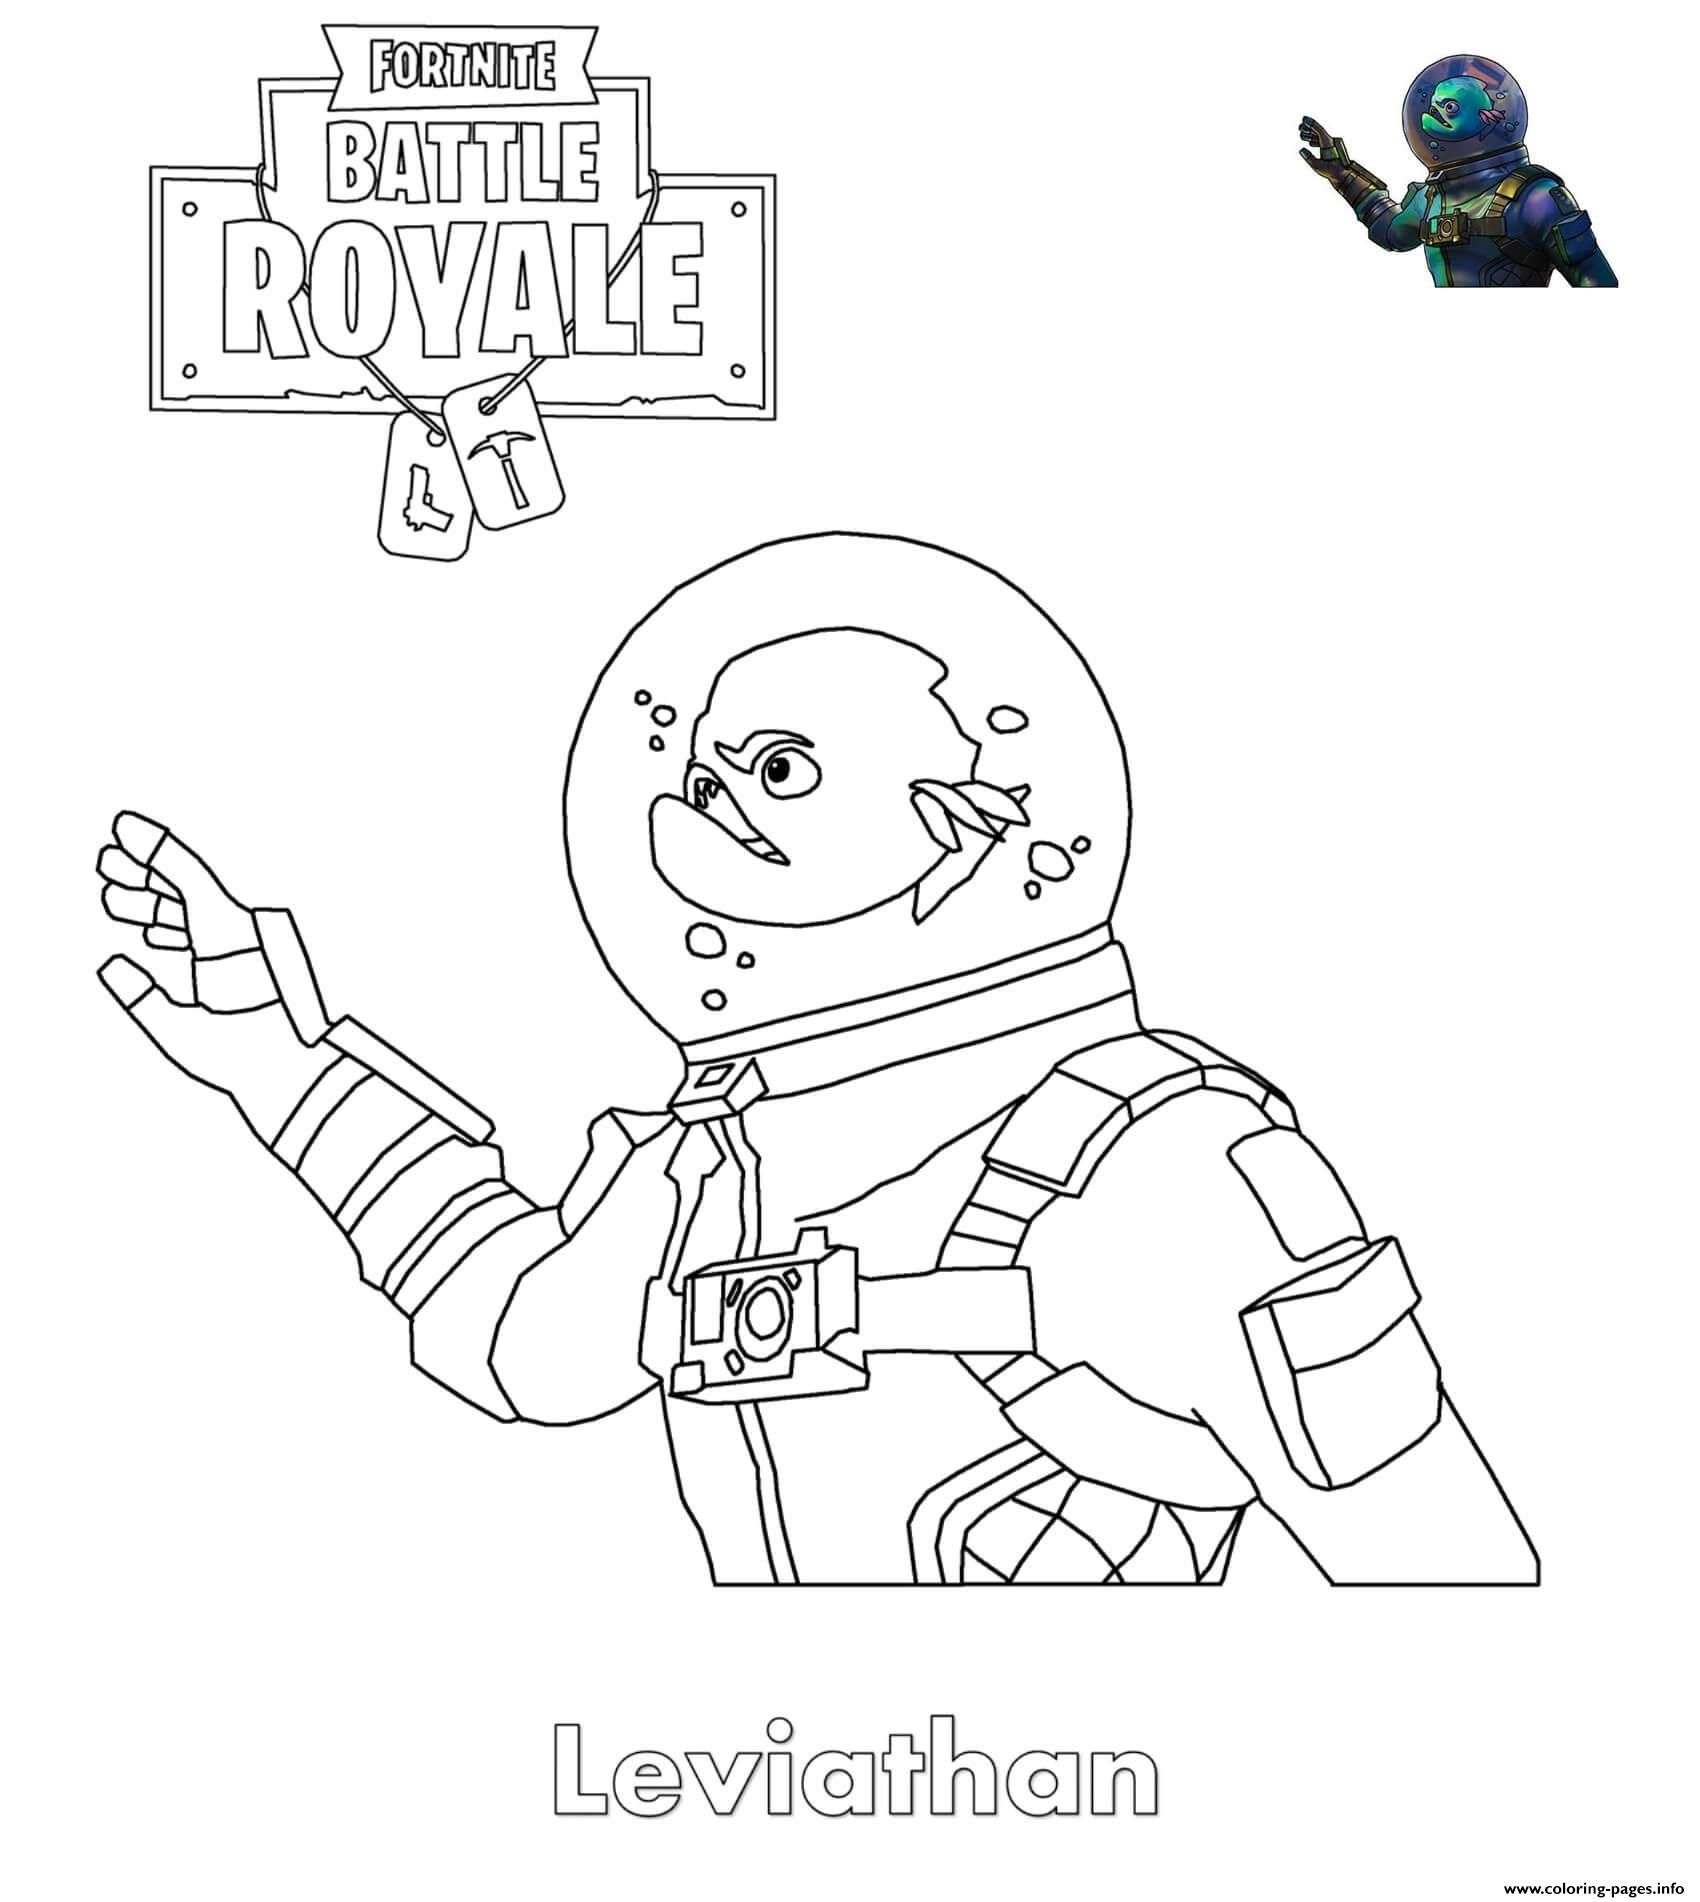 Print Fortnite Leviathan Skin Coloring Pages Jons 10th Birthday In